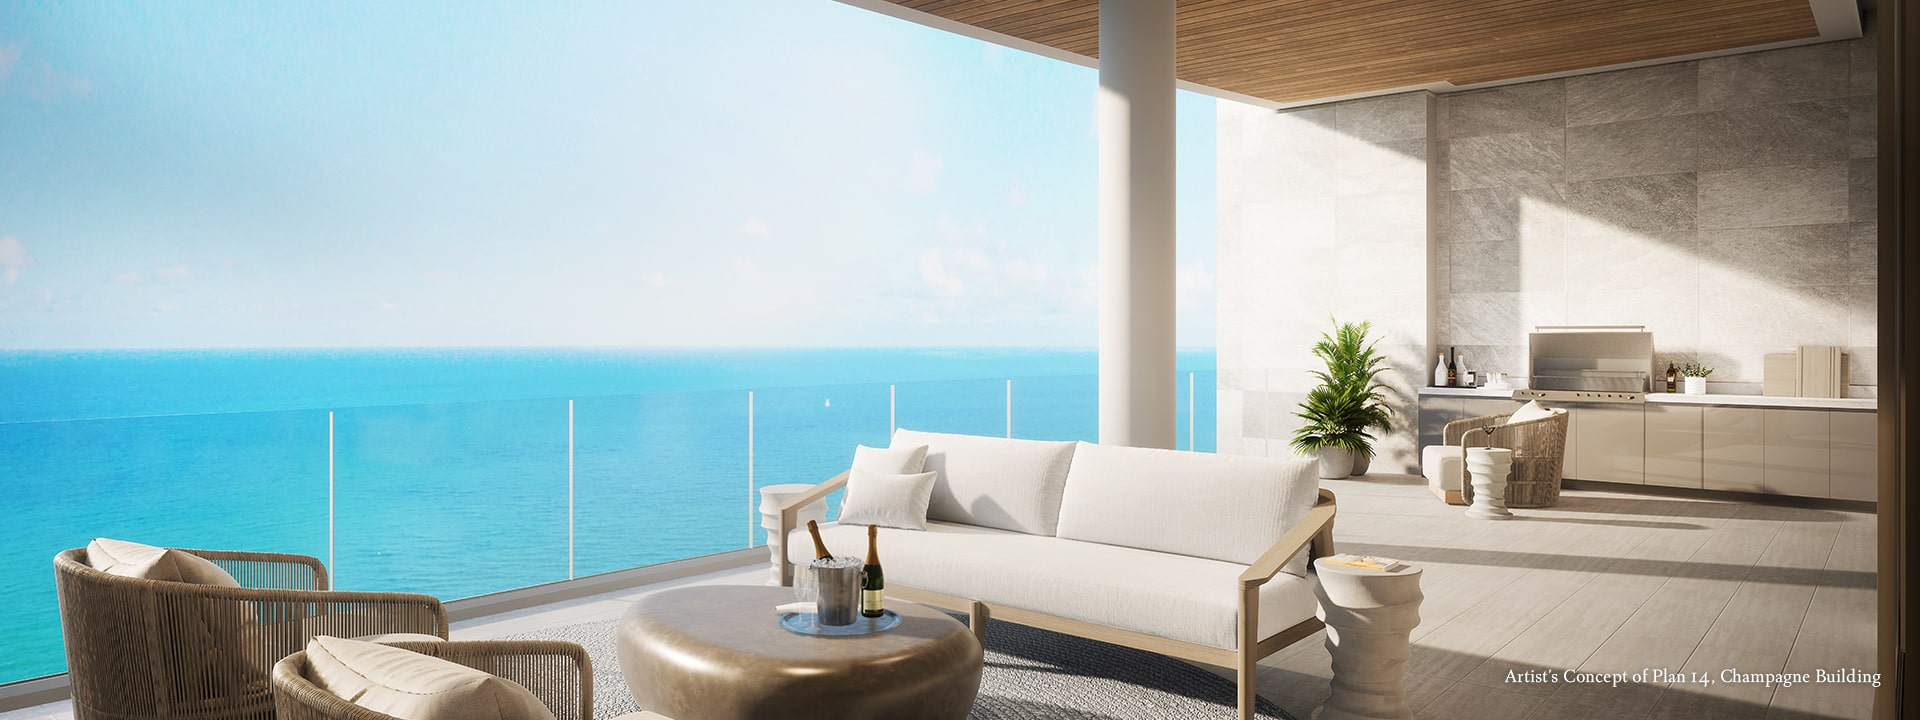 Champagne Plan 14 Terrace Rendering at The St Regis Longboat Key Resort